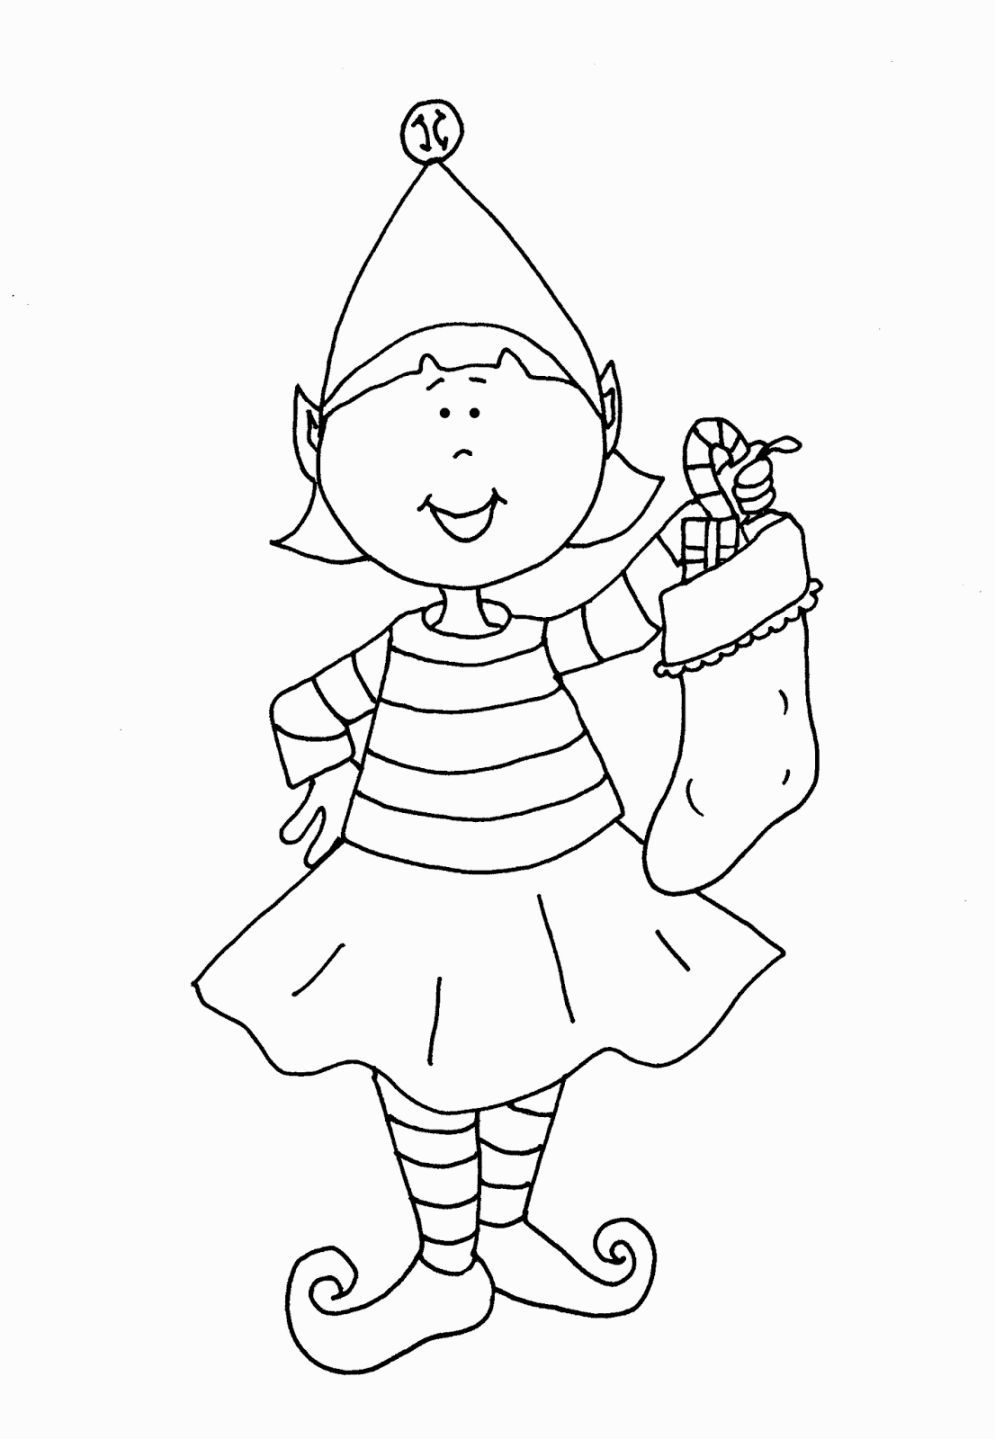 Free Printable Christmas Elf Coloring Pages With Xmas Chair Design Pinterest Elves